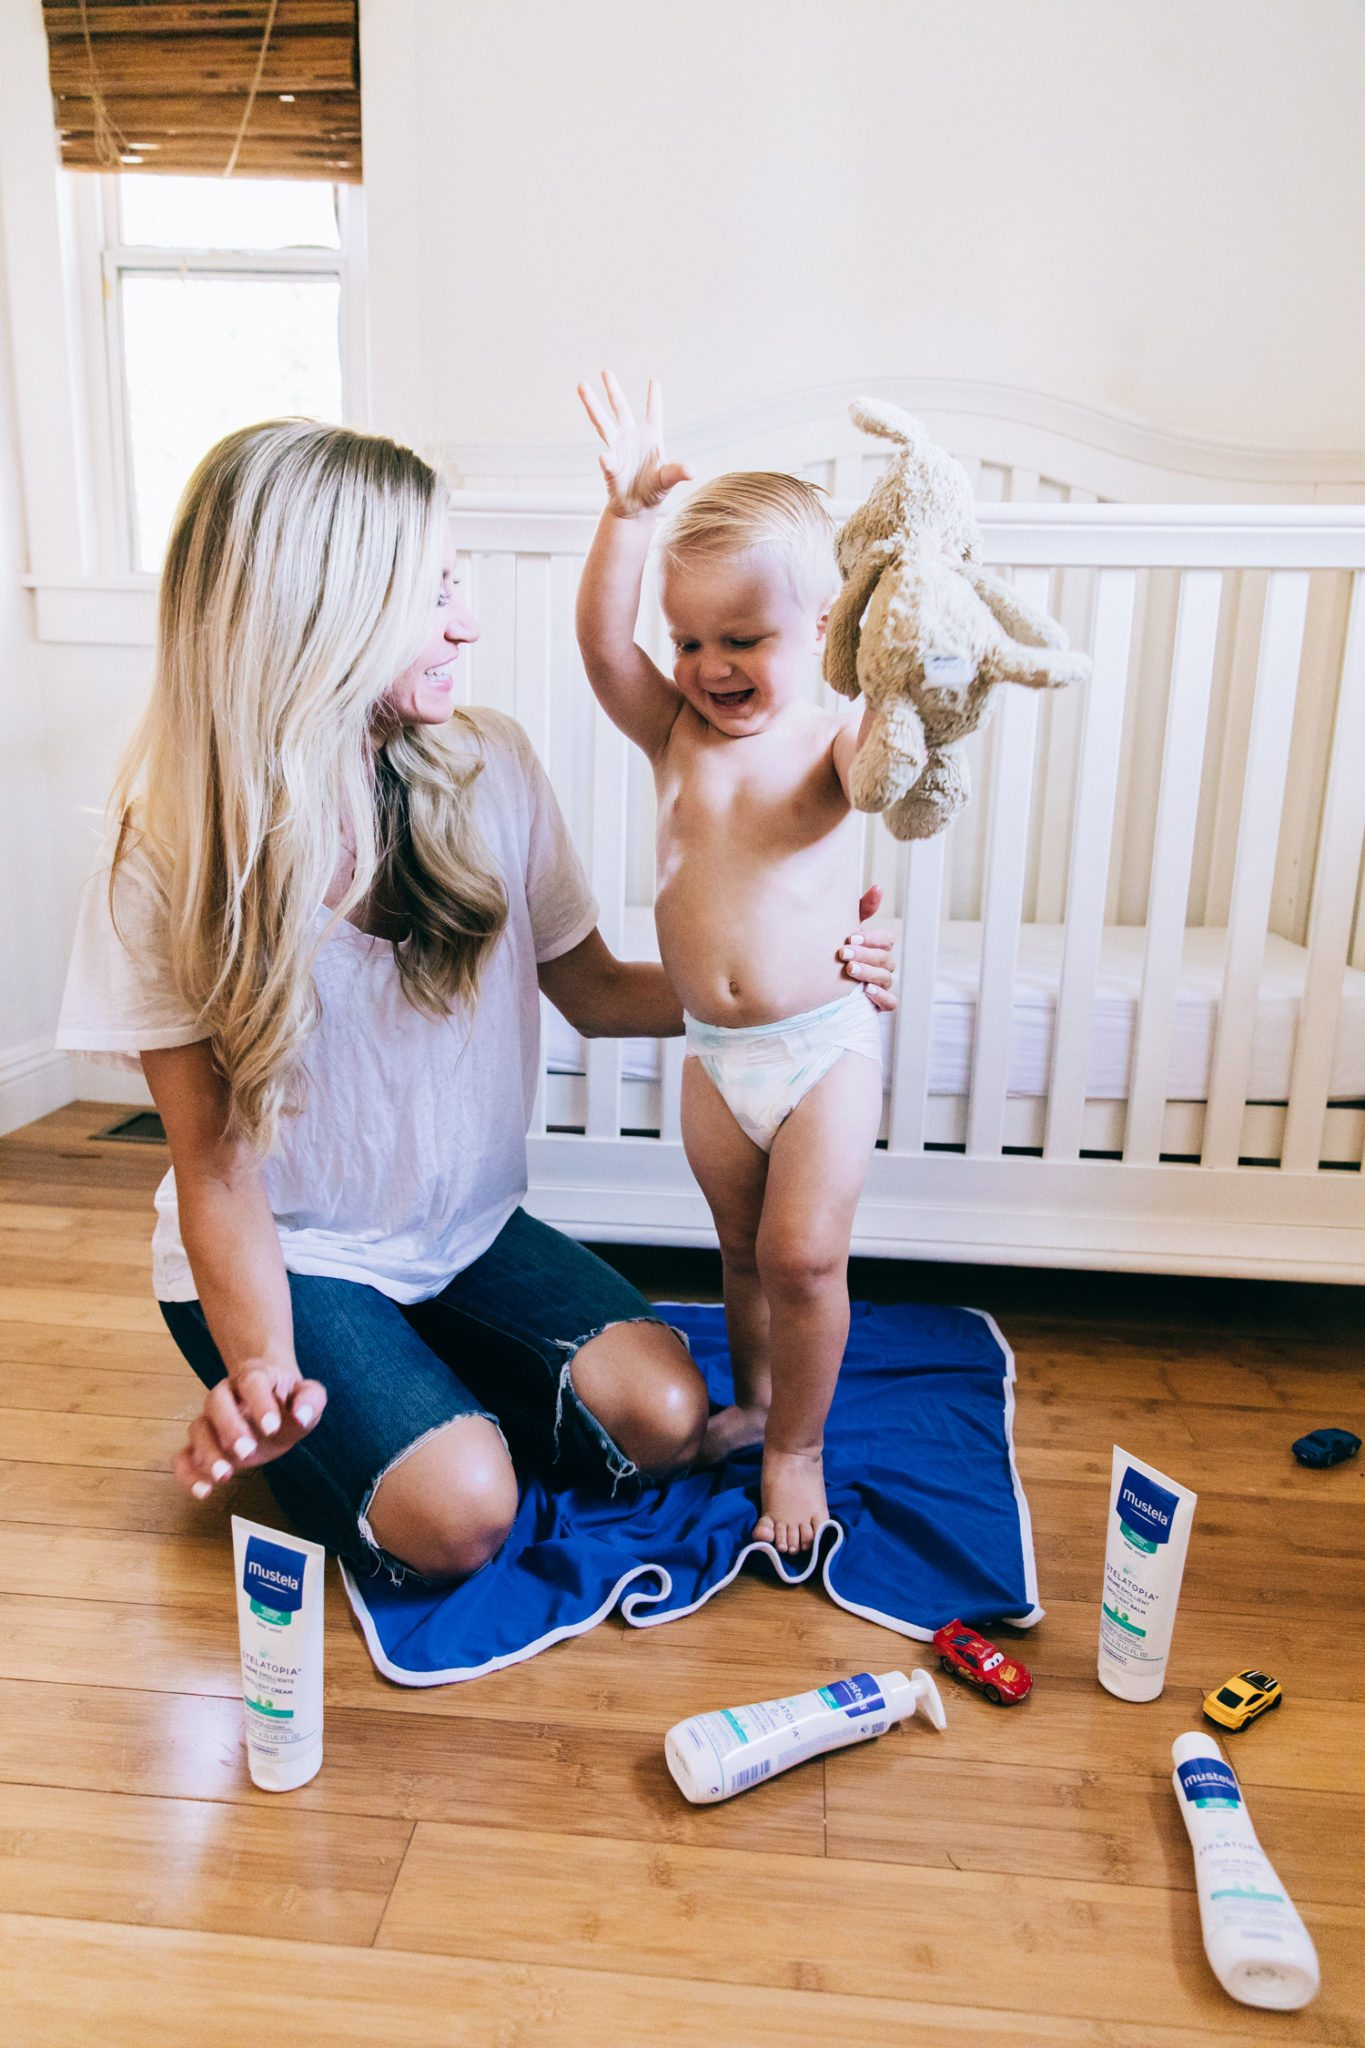 My favorite baby lotion for treating eczema-prone skin